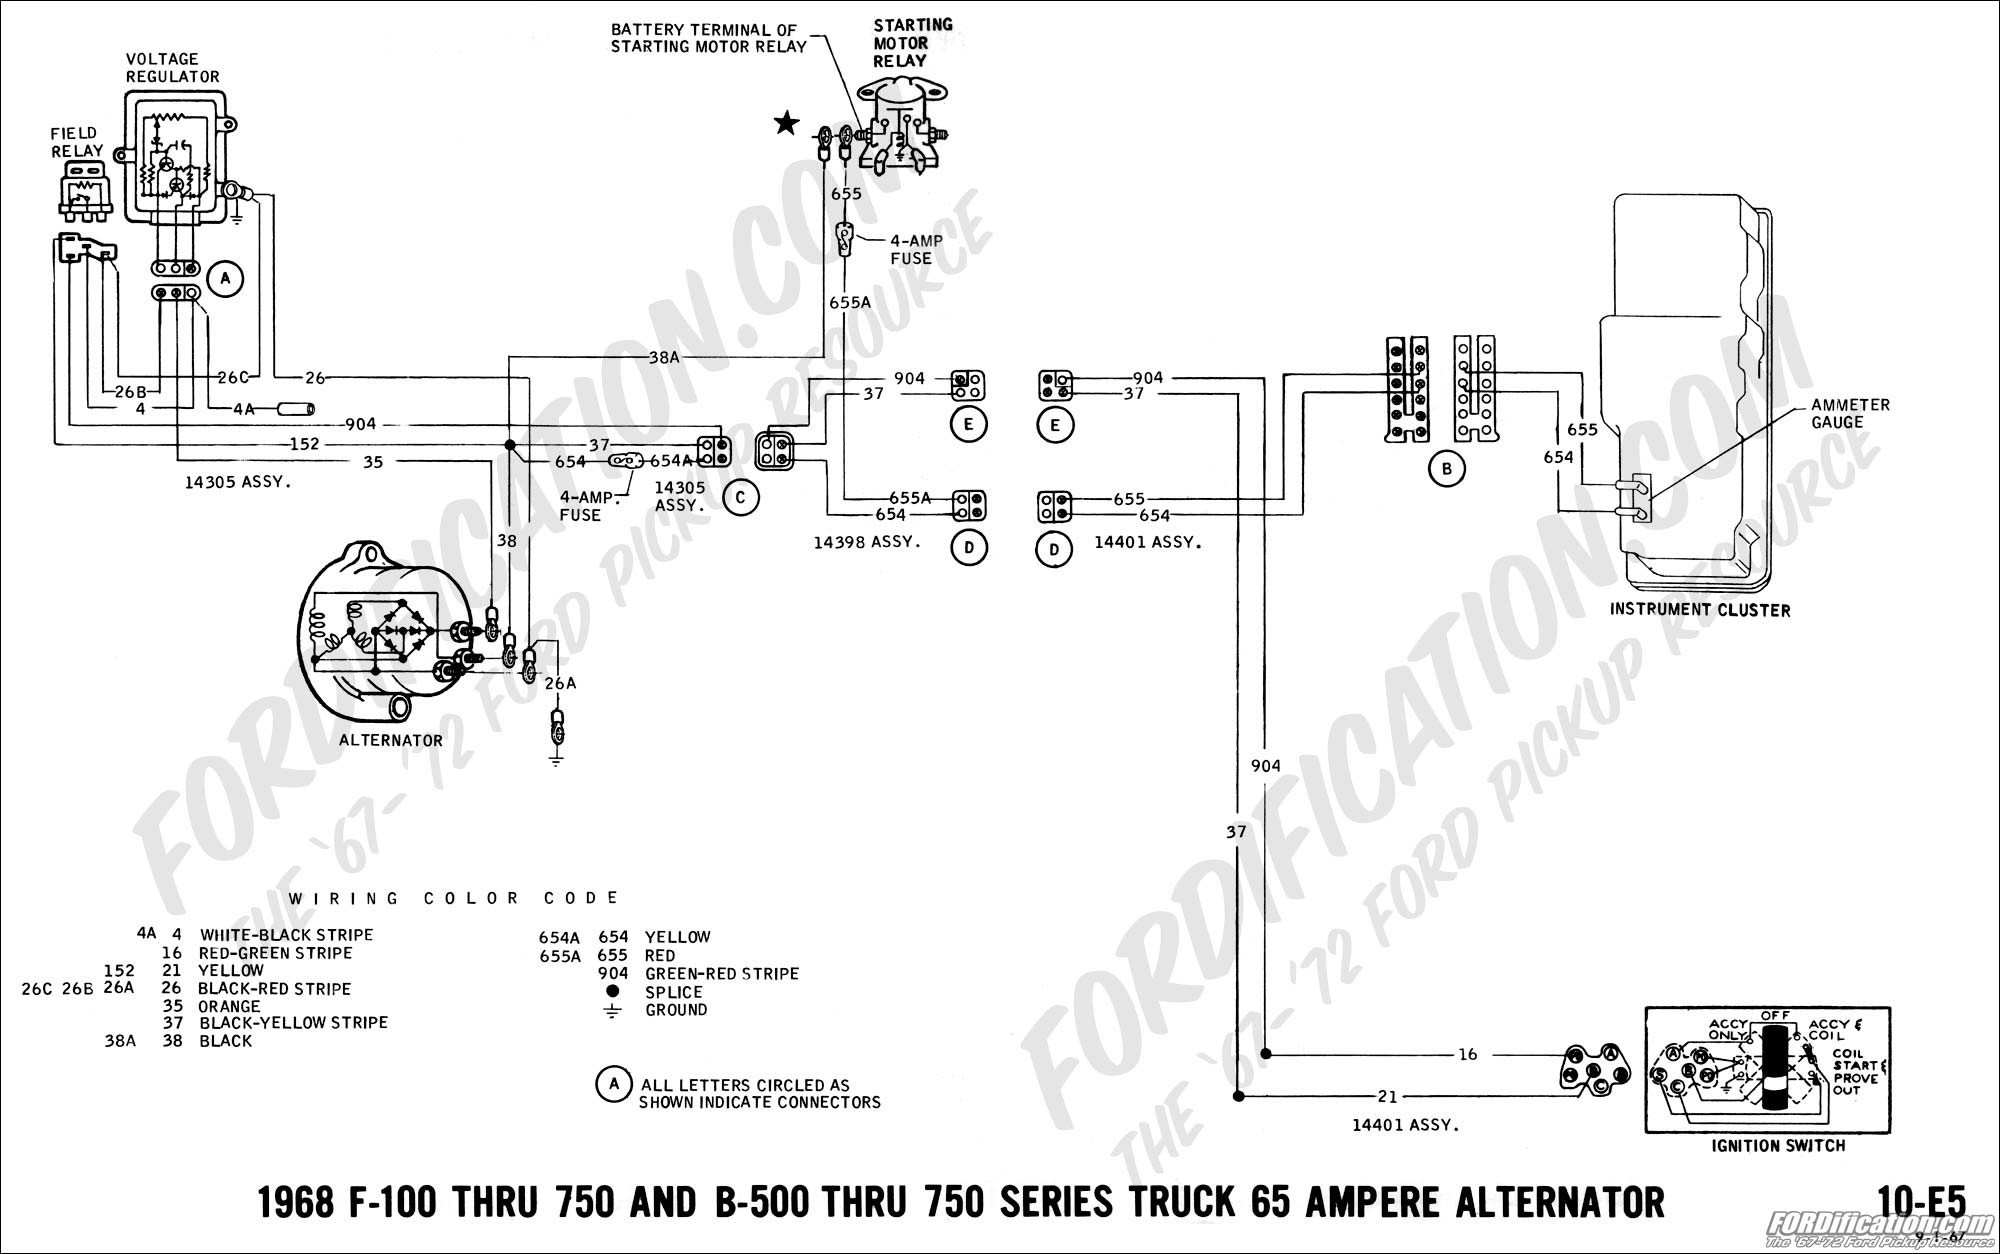 1968 mustang factory tach wiring wiring diagram sle ideas cool 1968 mustang 1970 ford torino wiring diagram - wiring diagram ... #11